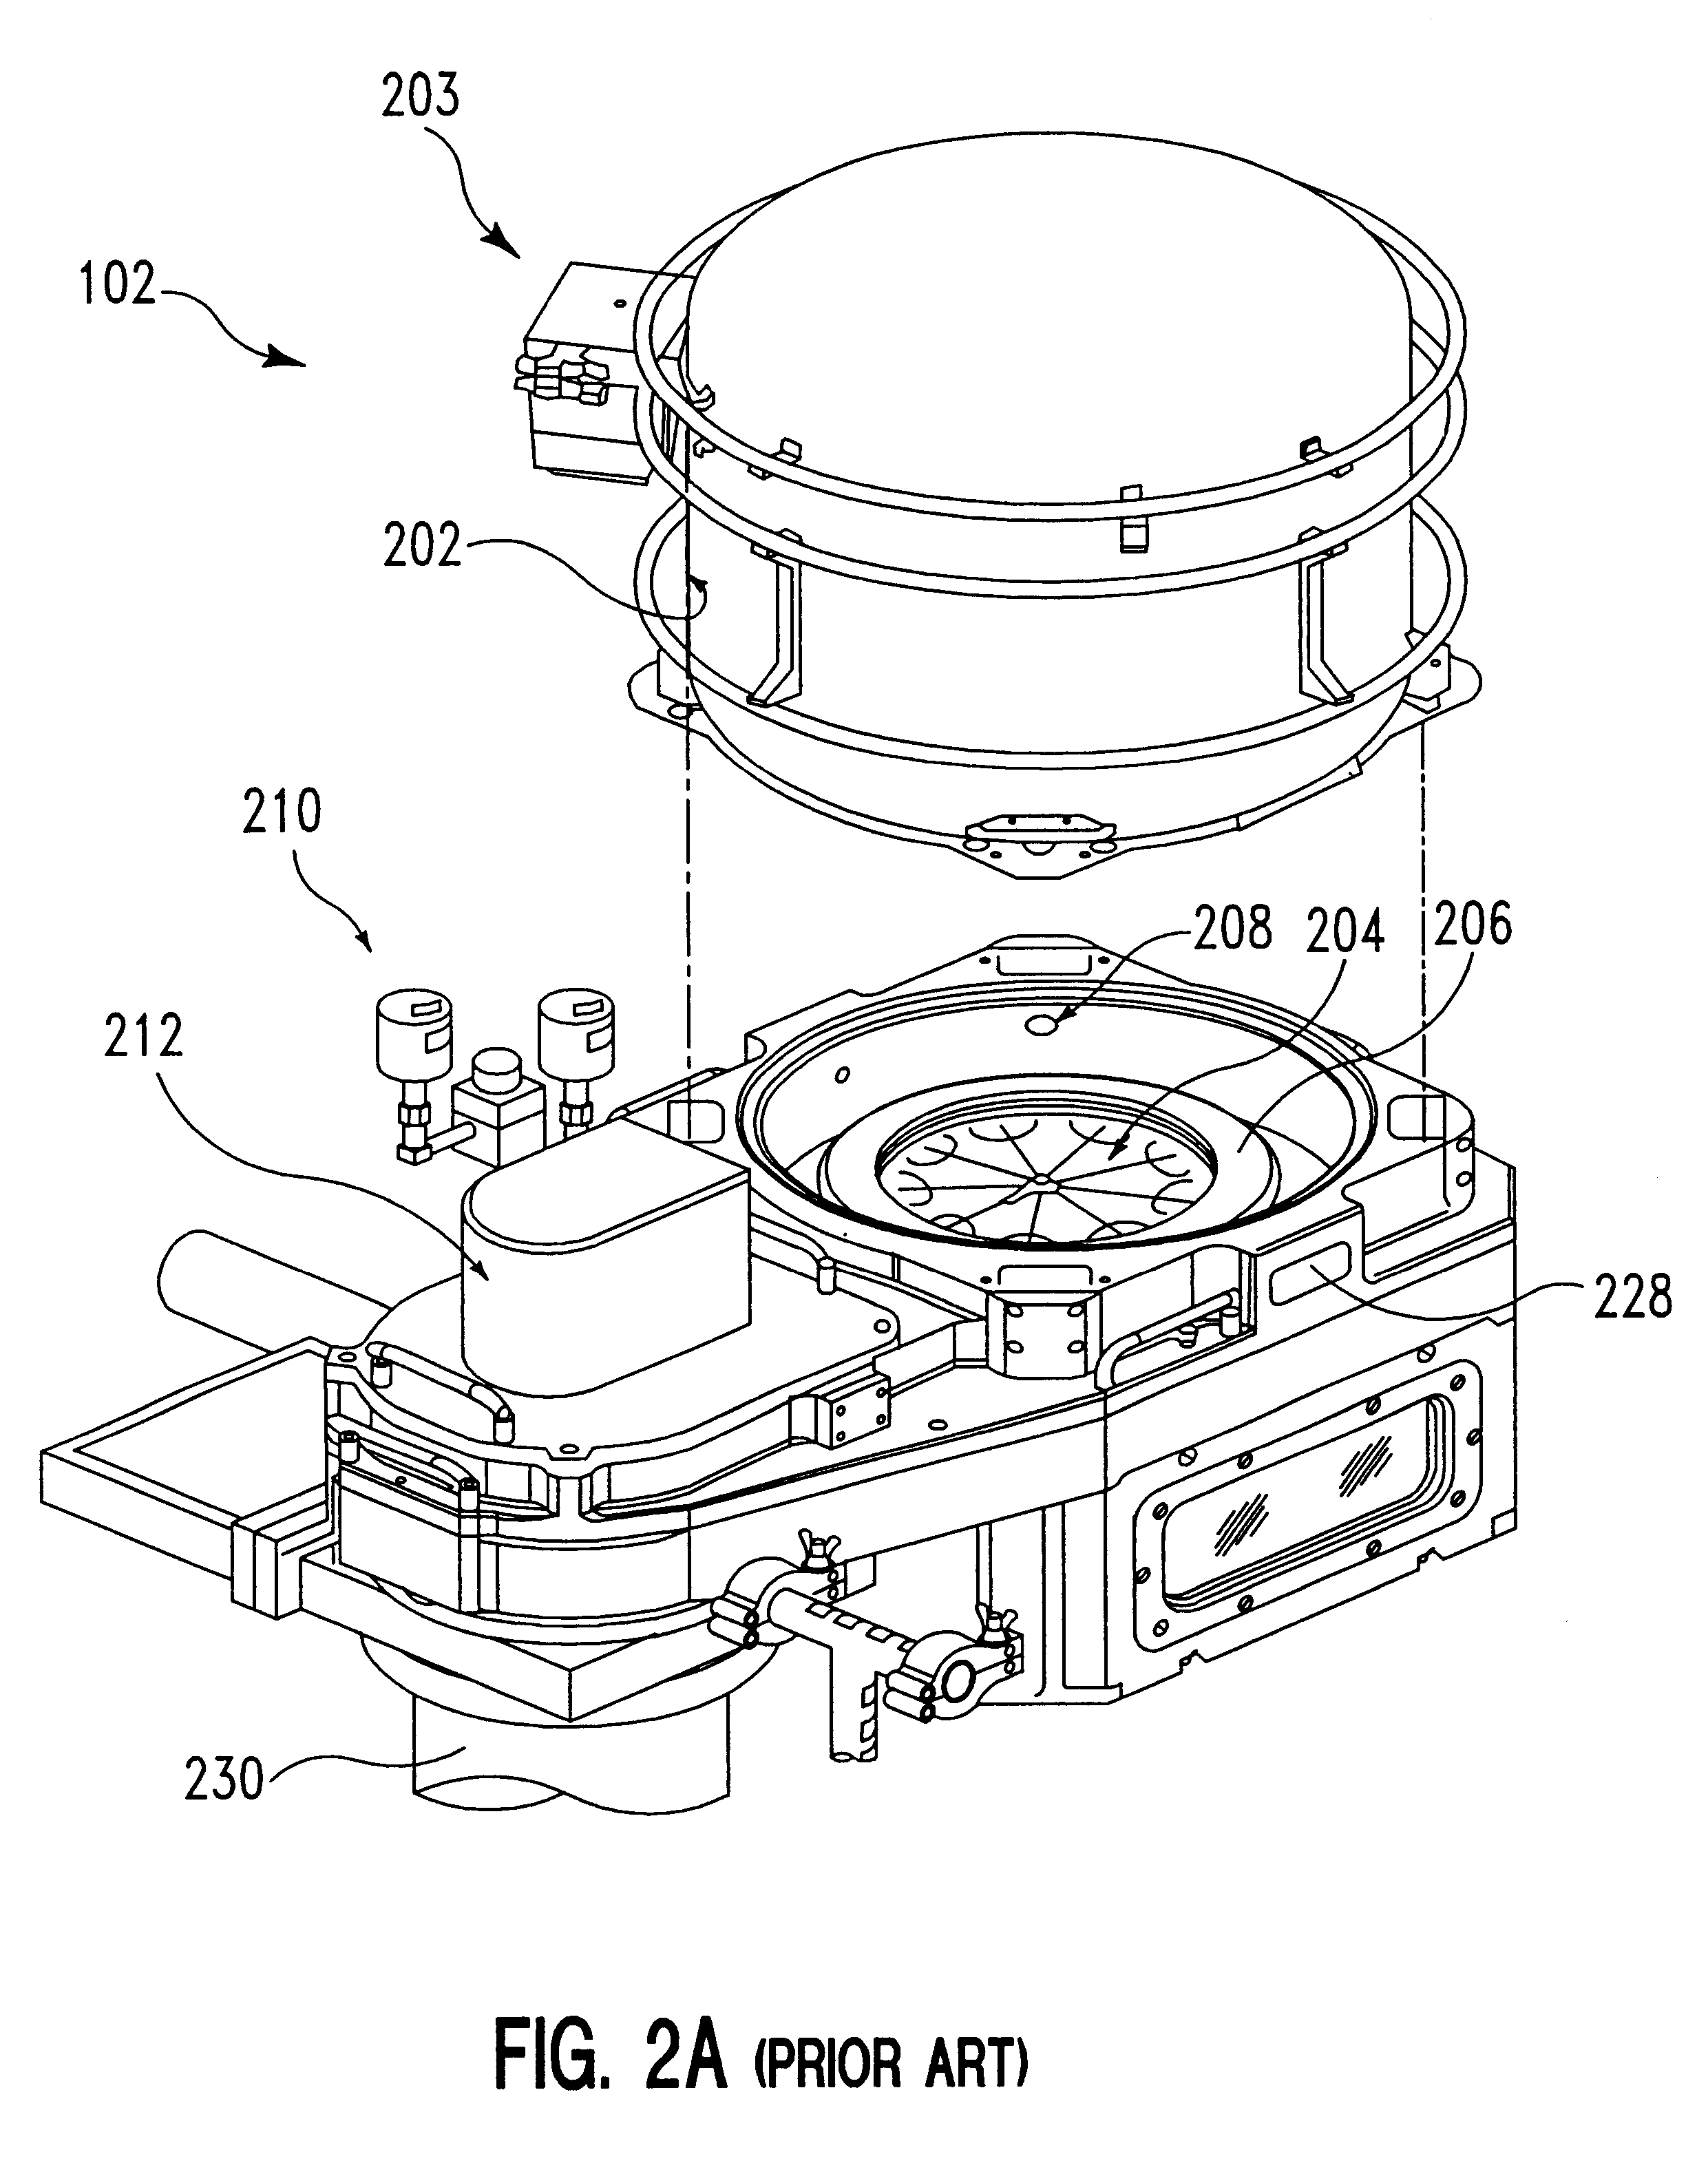 Semiconductor Processing Wafer Steps